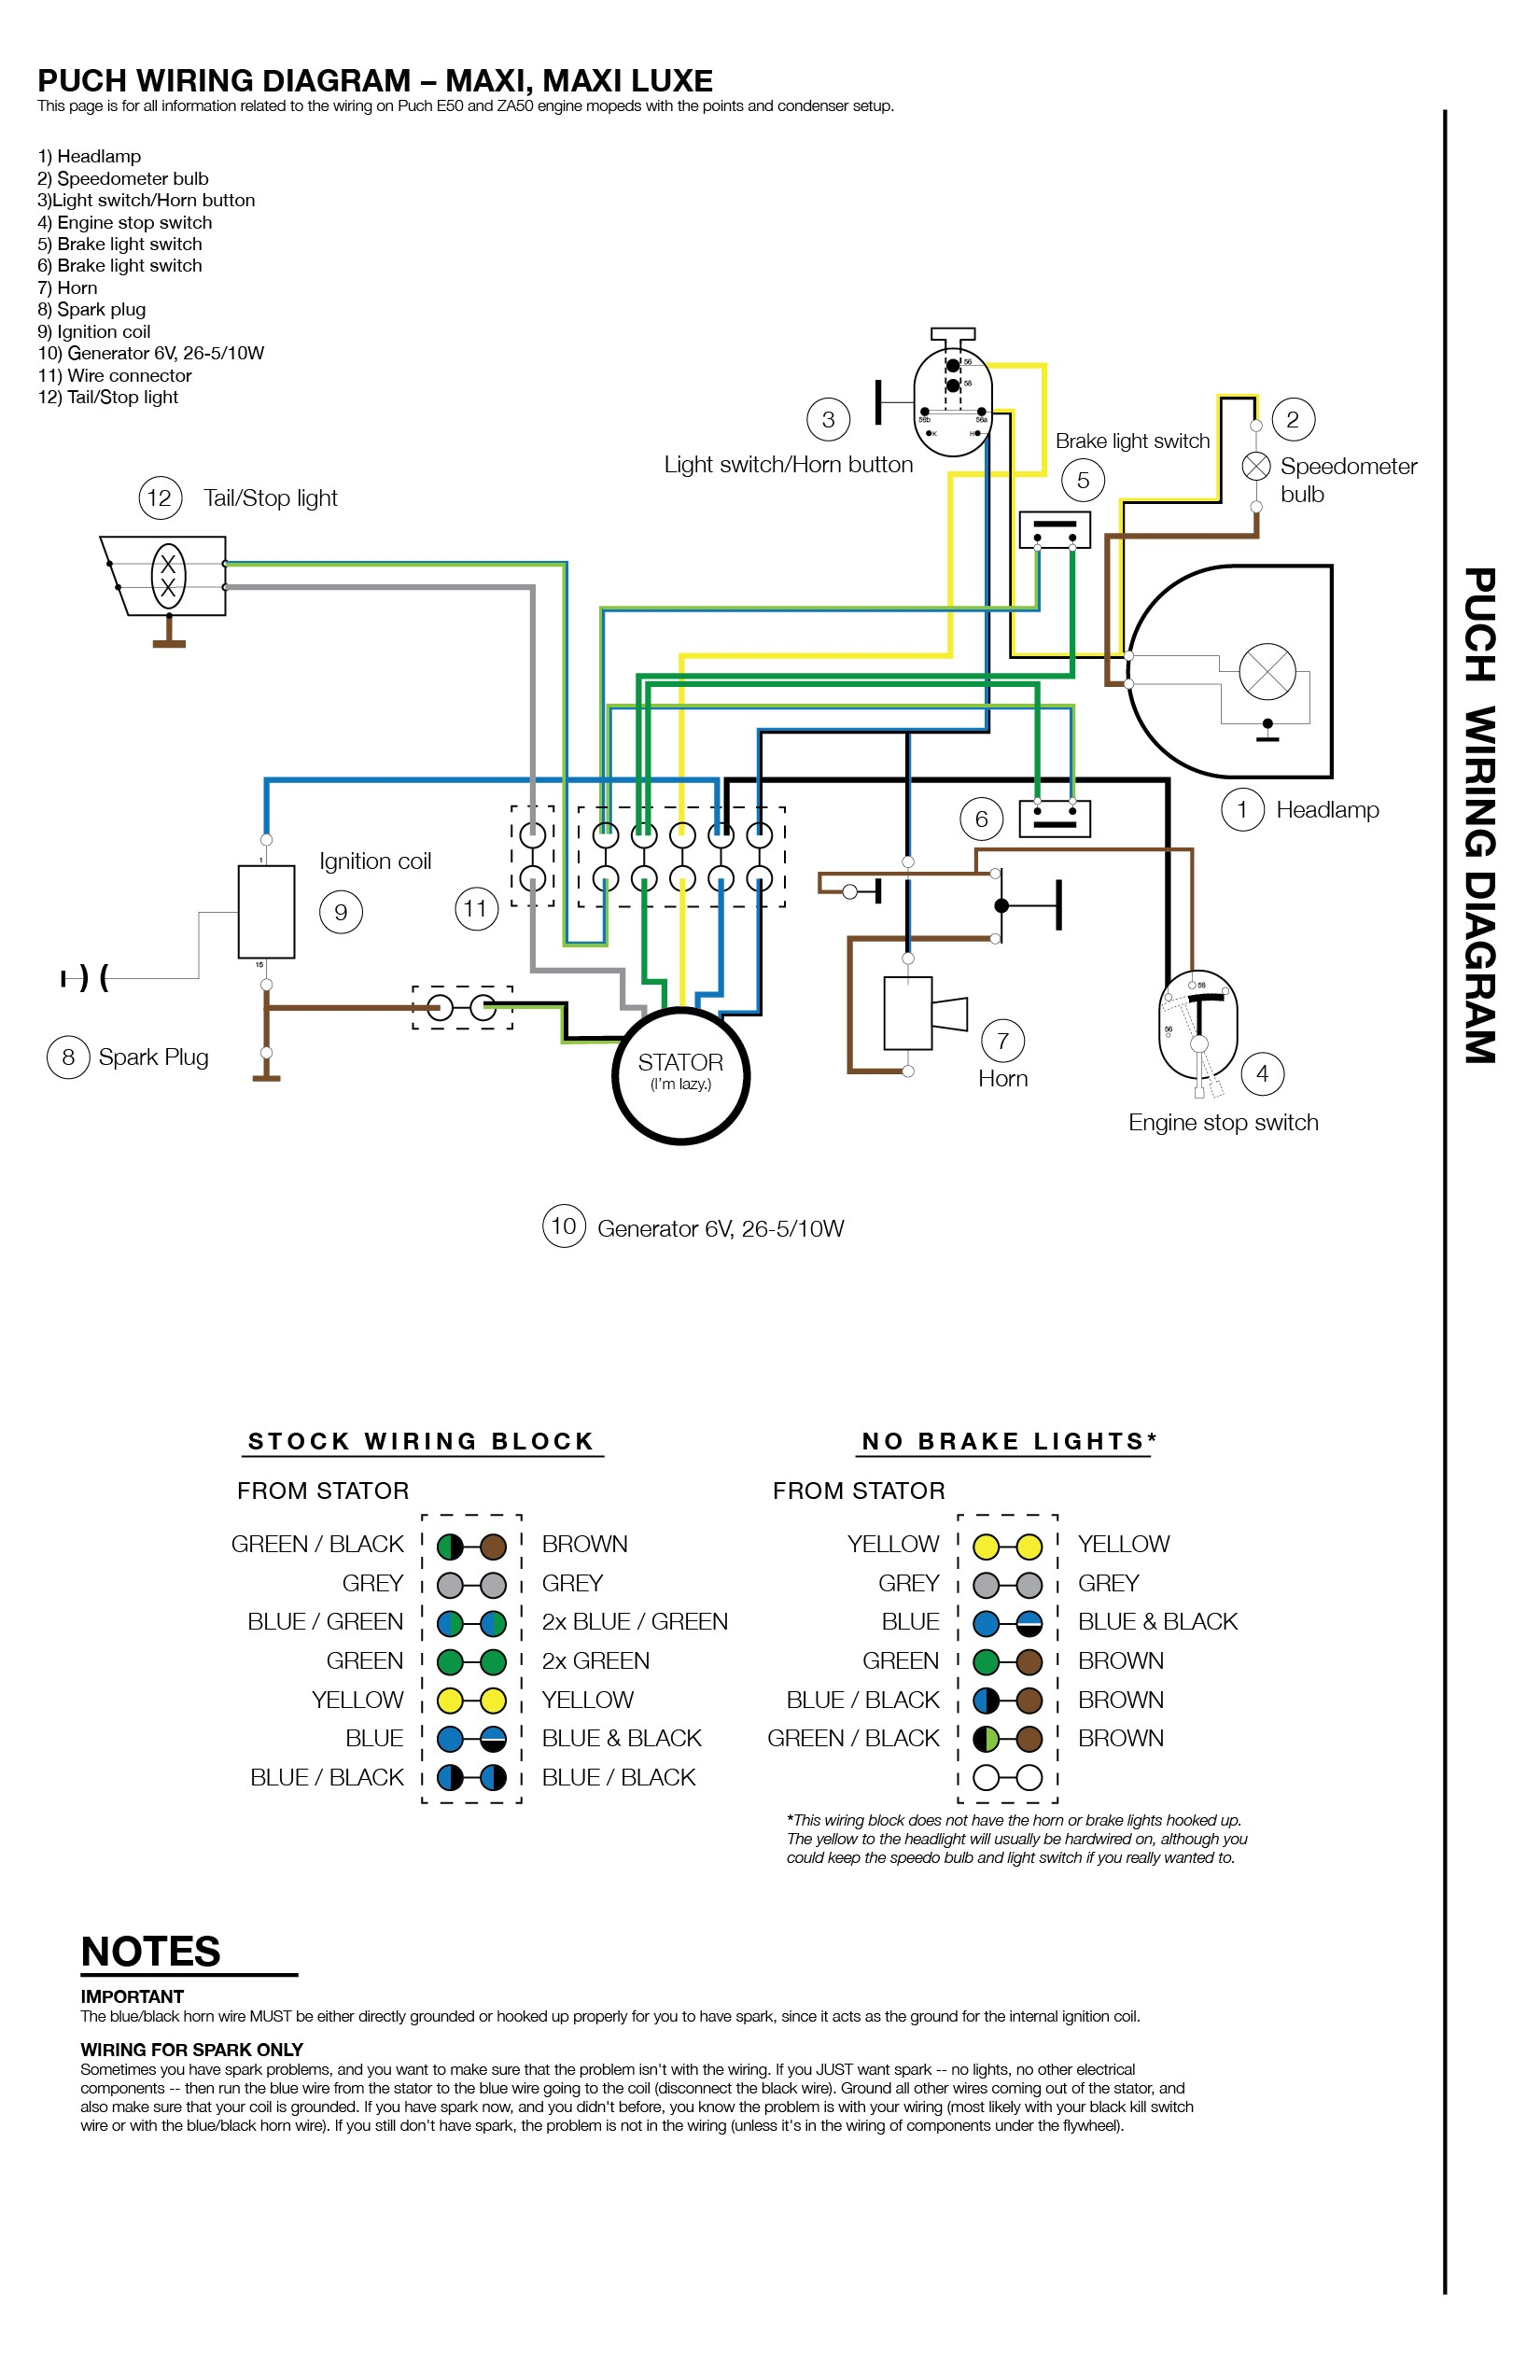 puch moped wiring diagram puch wiring diagram 1978 79 6 wire rh pinterest